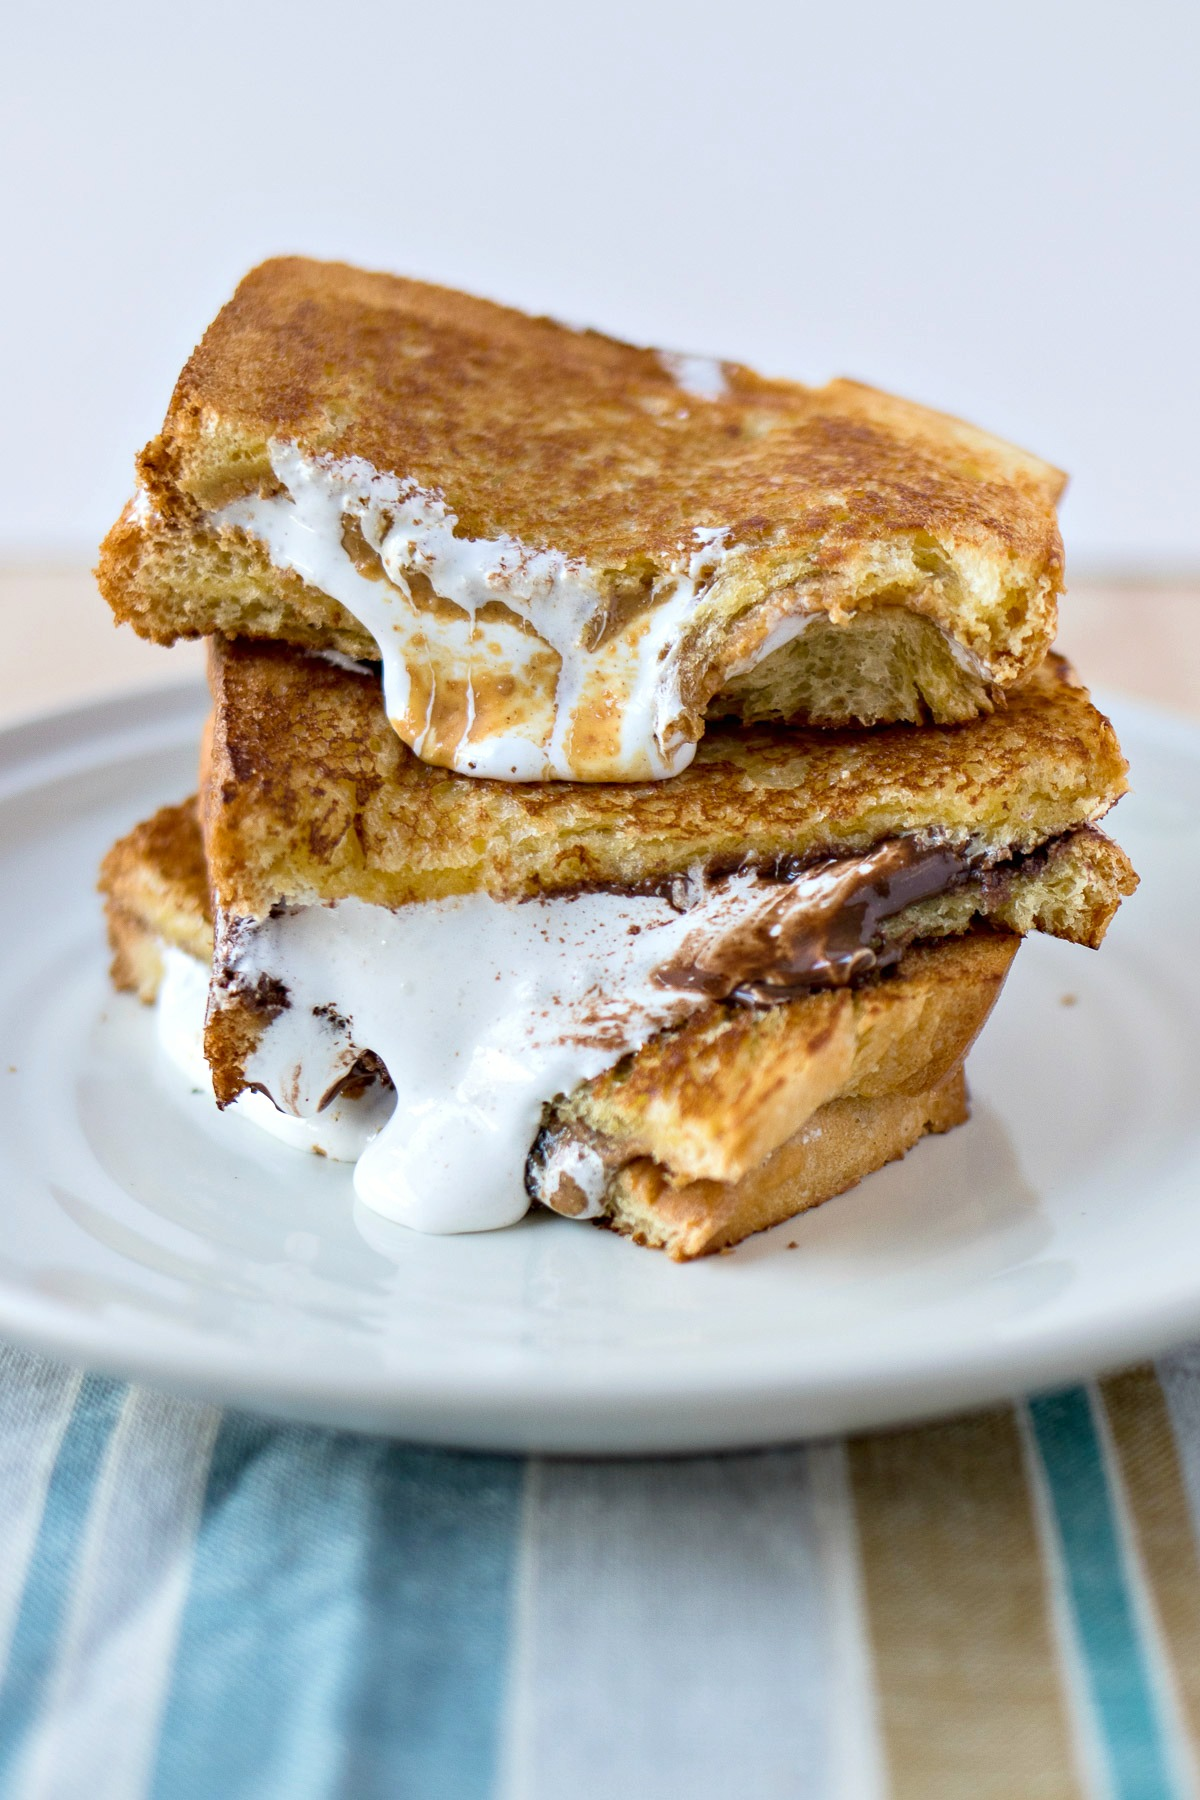 Chocolate And Peanut Butter Sandwiches